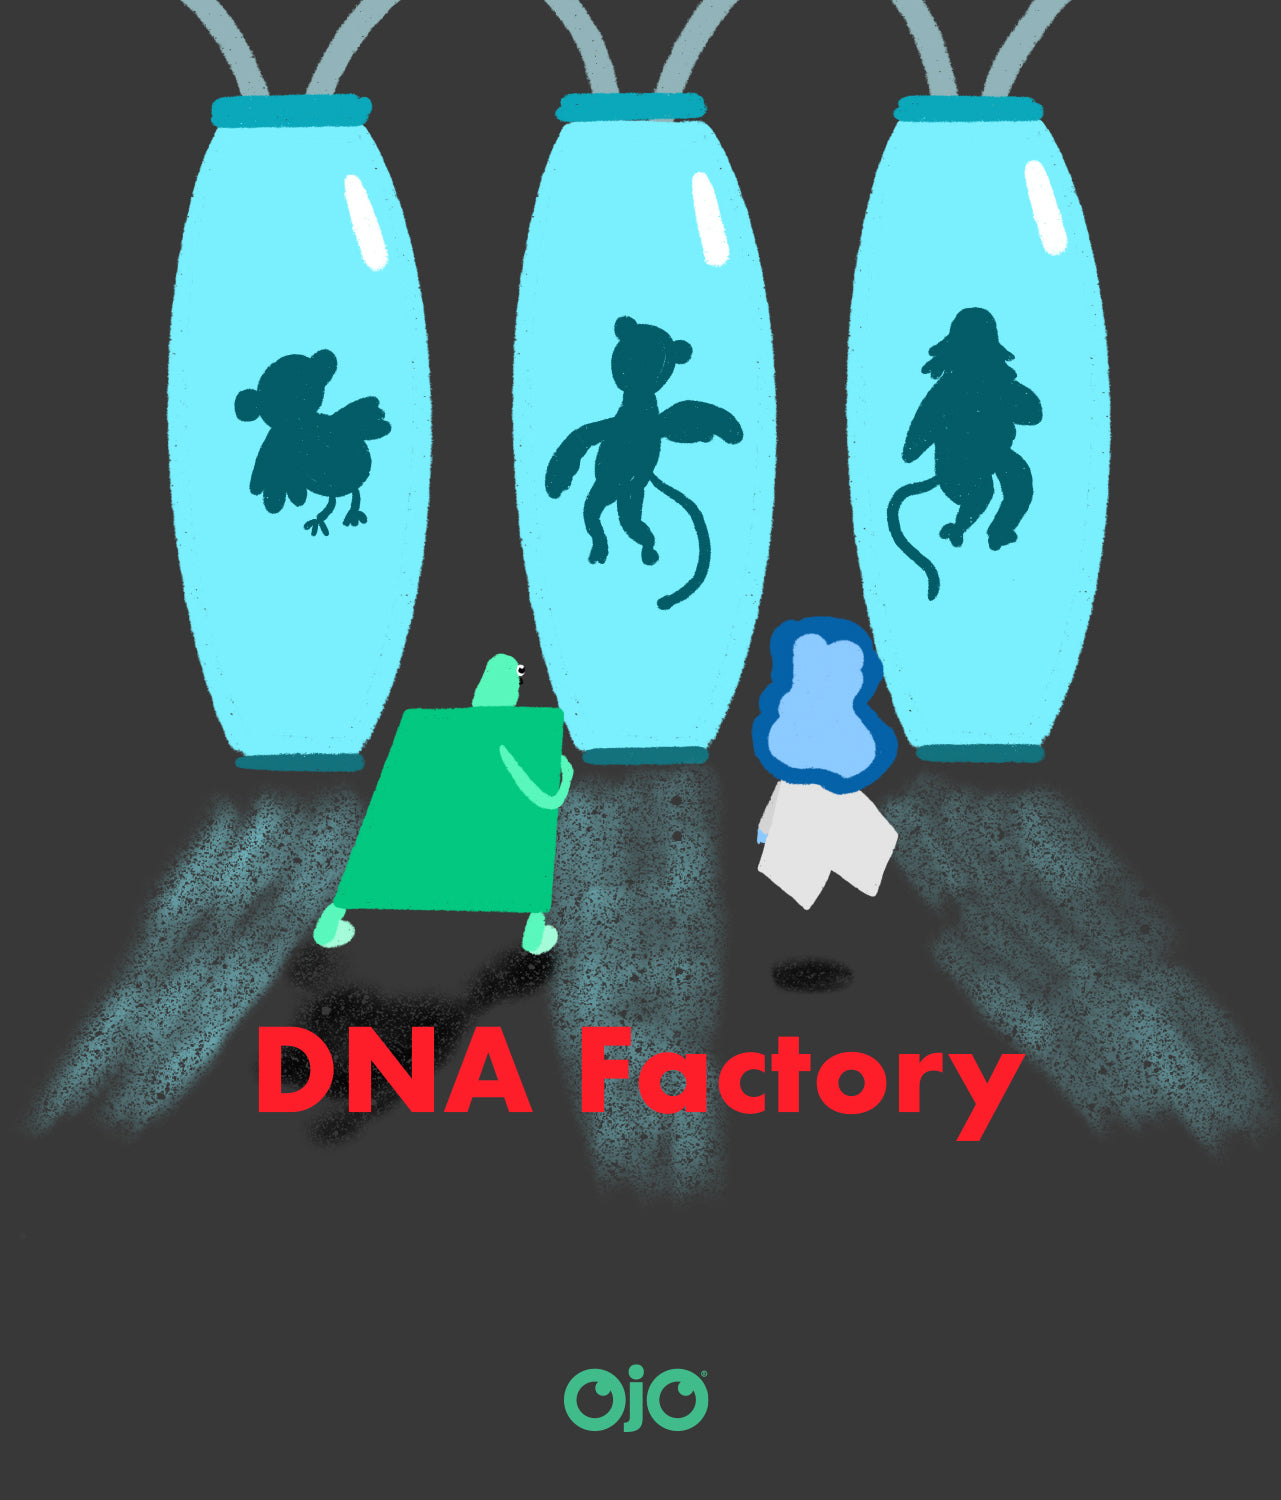 OJO DNA Factory Book Picture